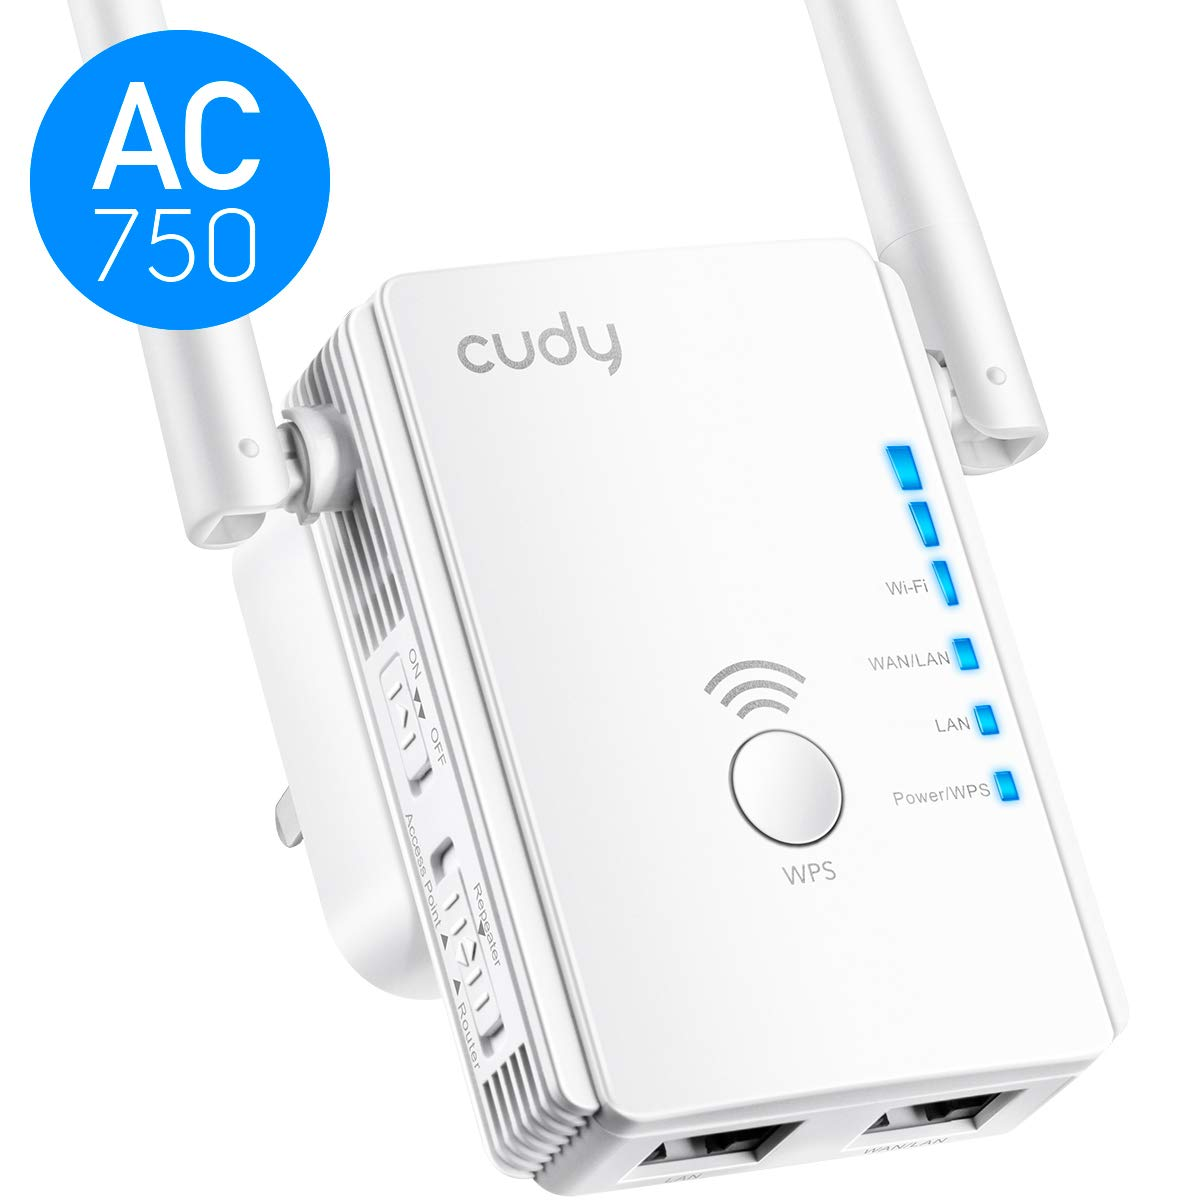 Cudy AC750 Dual Band WiFi Range Extender, 750Mbps WiFi Booster, Access Point Mode, 2 LAN Ports, WPS, Extends 2.4G and 5G WiFi Range to Smart Home & Alexa Devices (RE750)